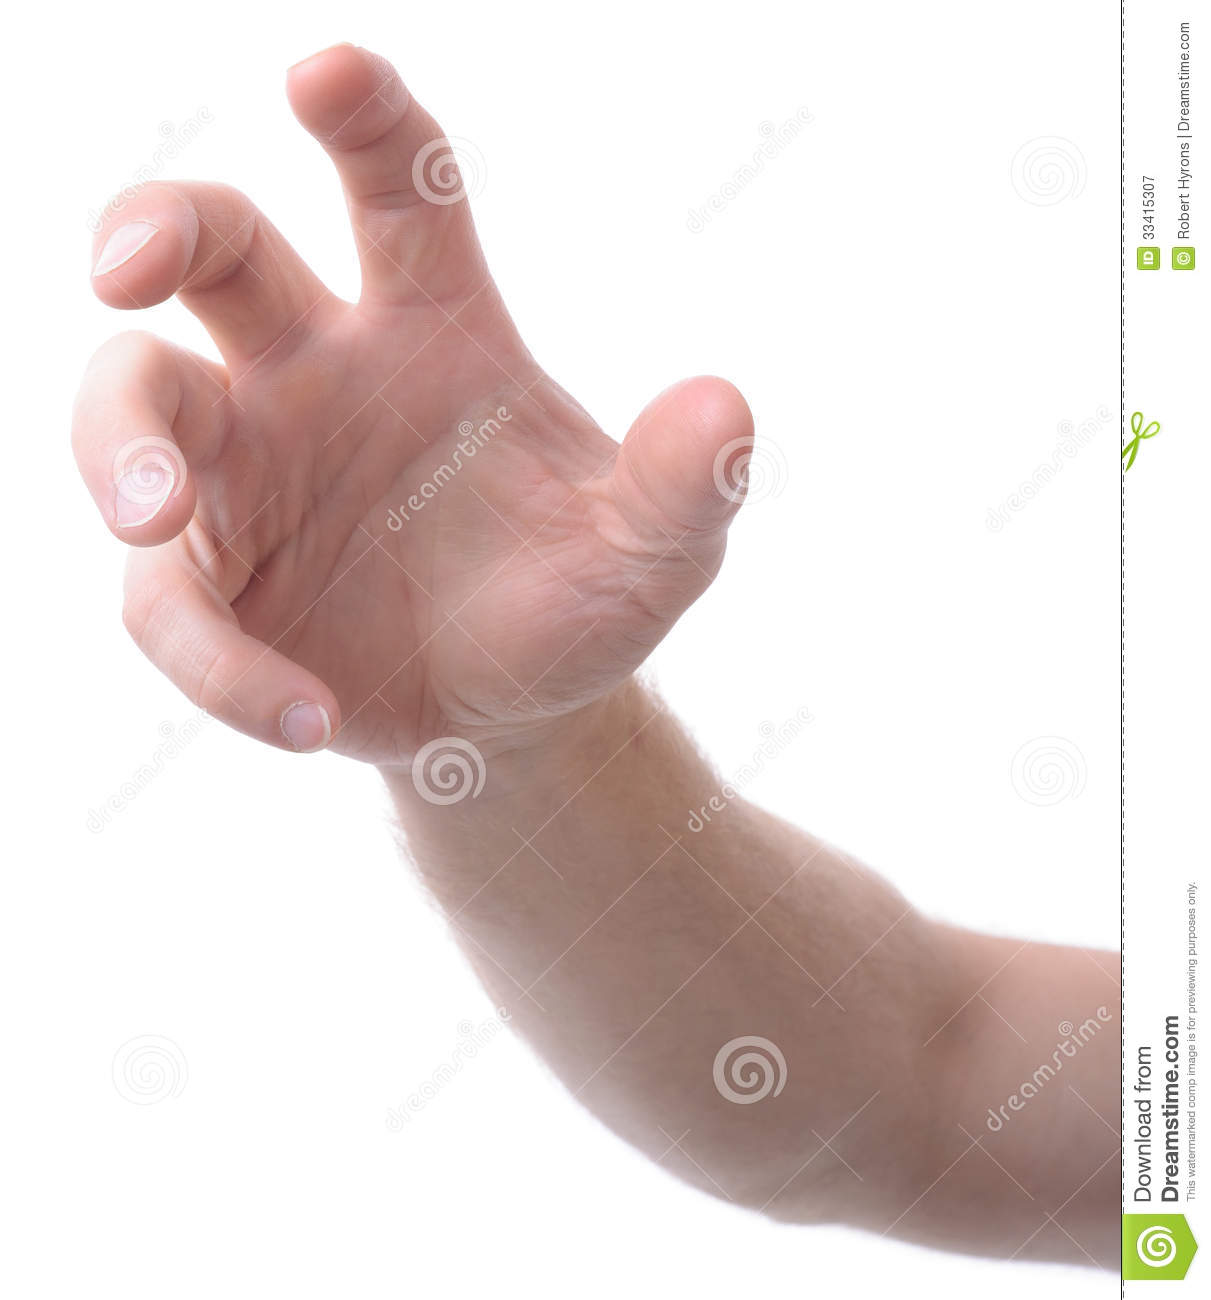 hand grab stock image image of view claw front ideas 33415307